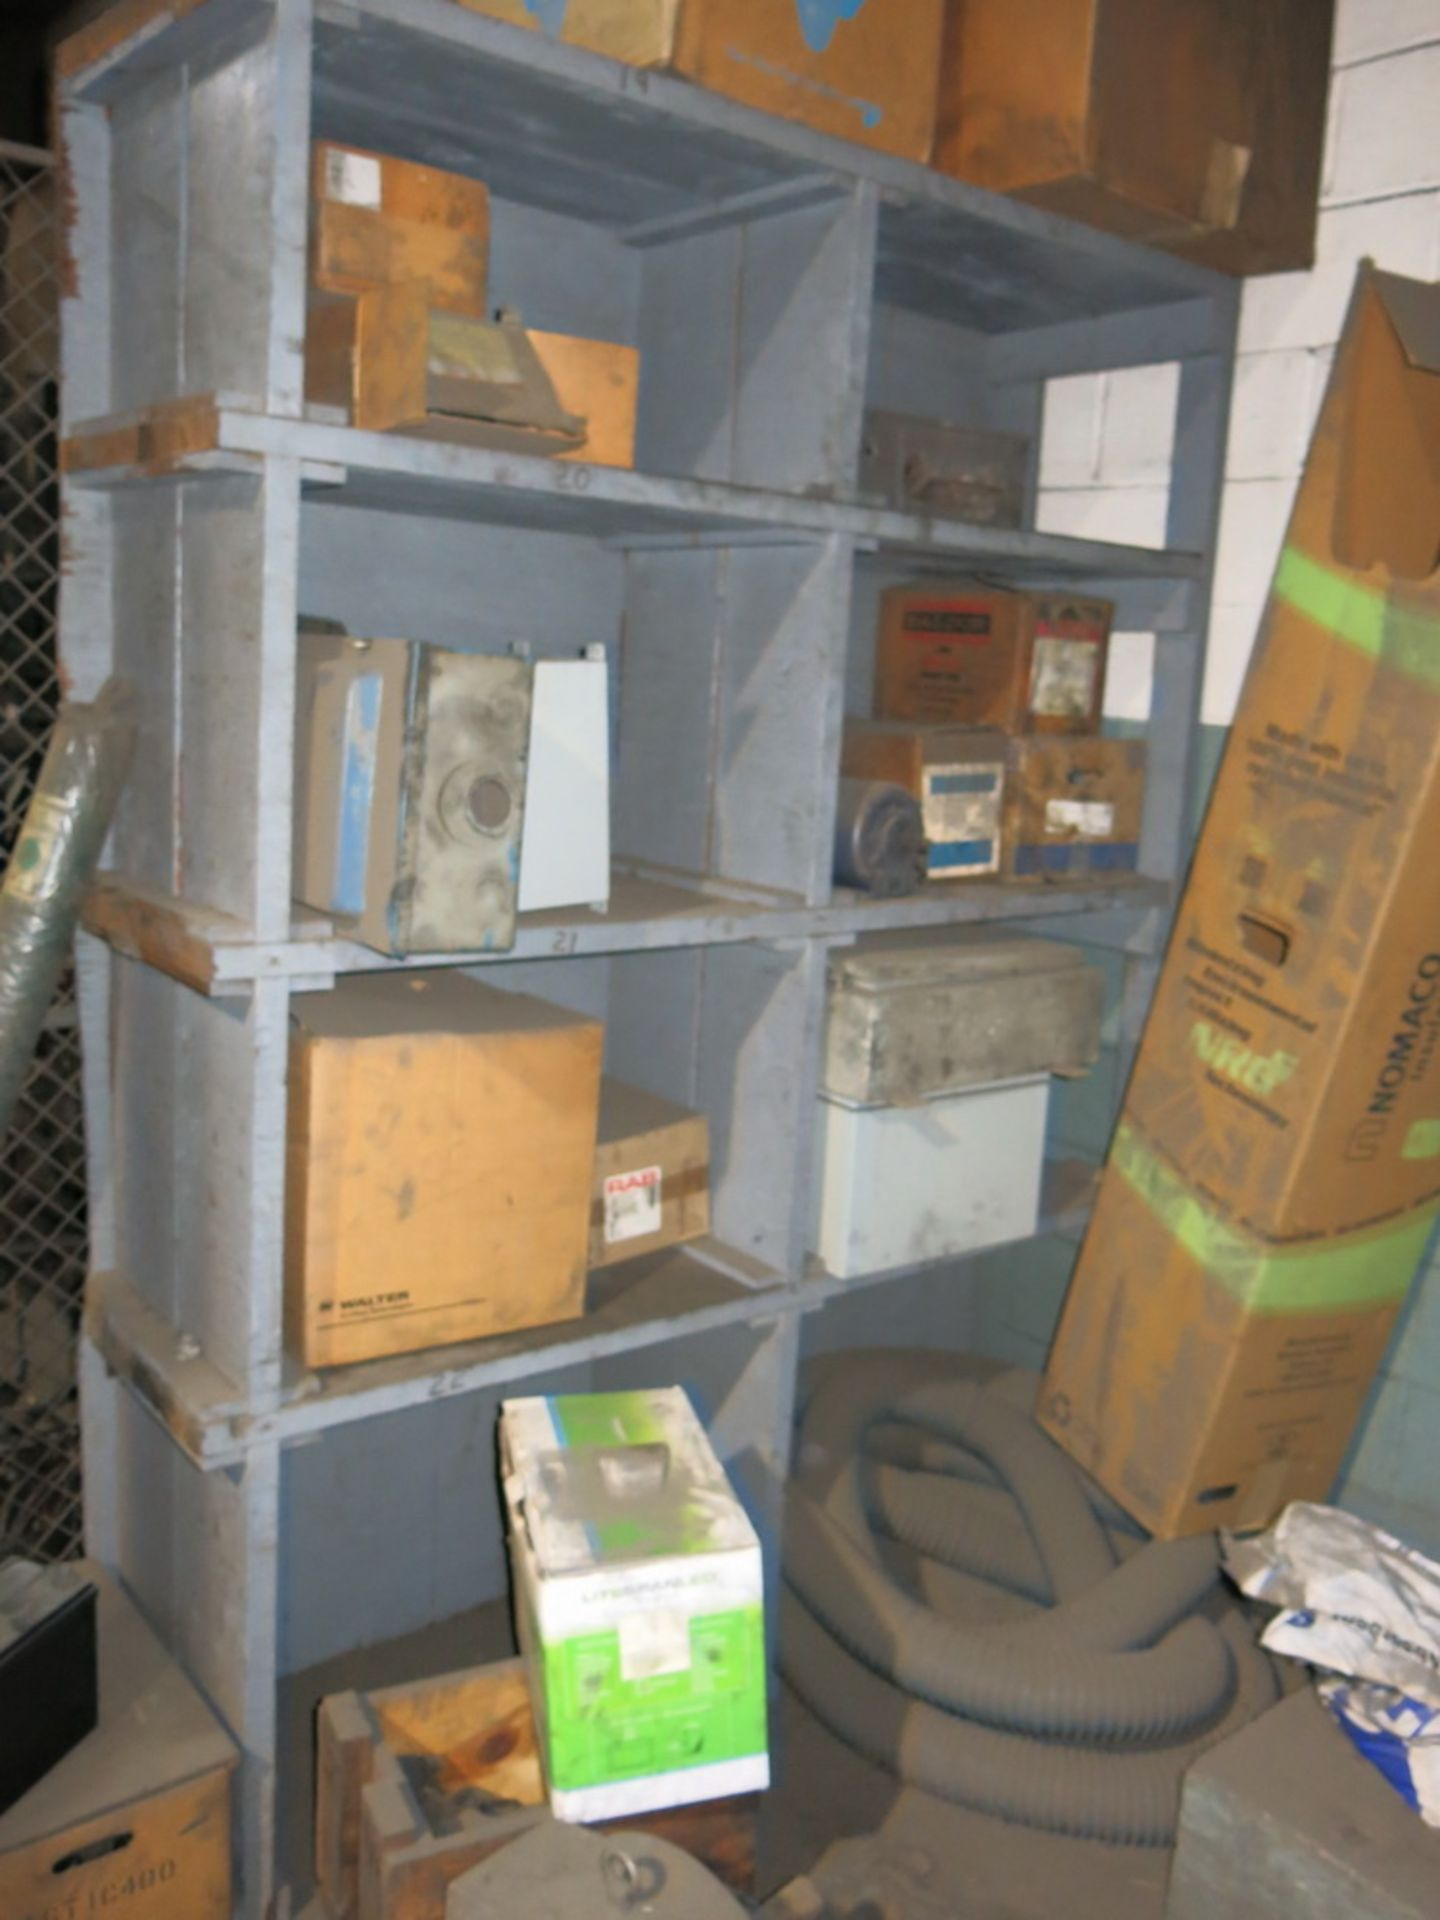 Remaining Contents of Air Compressor Room - Image 2 of 5